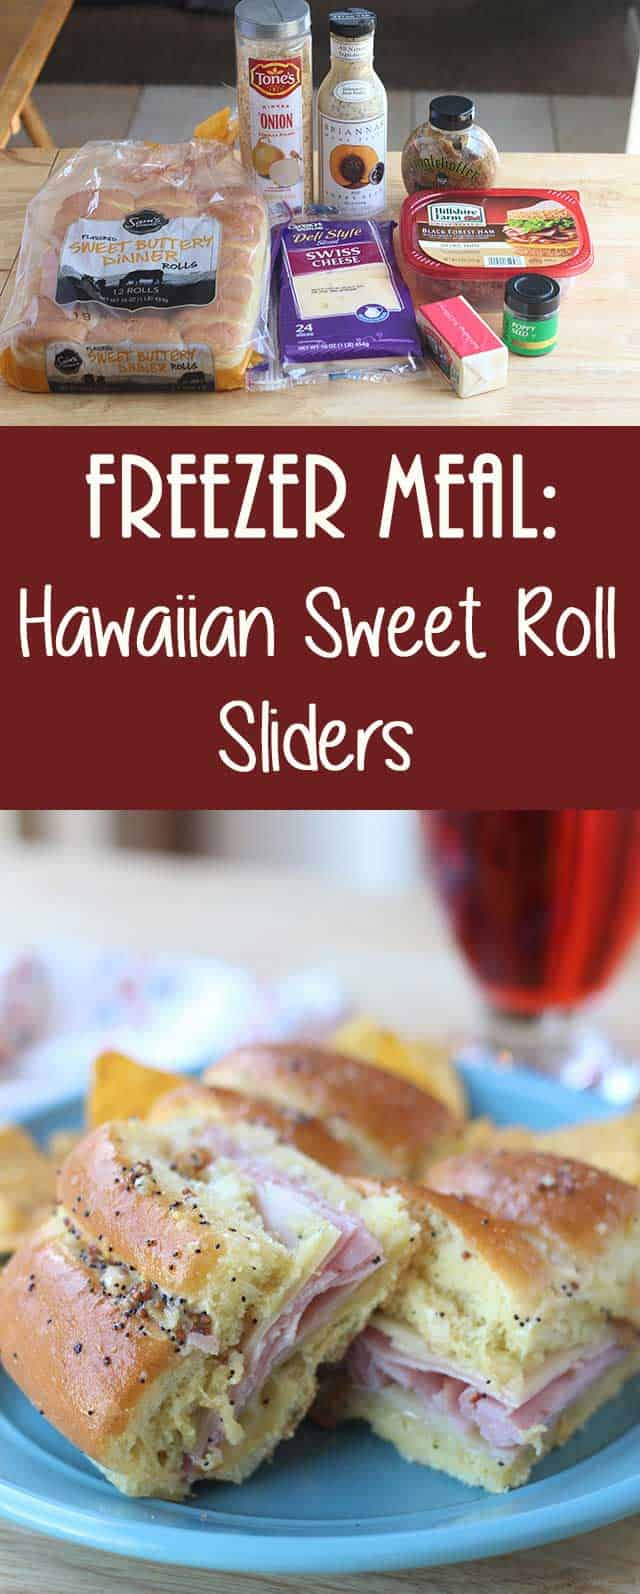 Hawaiian Sweet Roll Sliders Pinterest LongPin